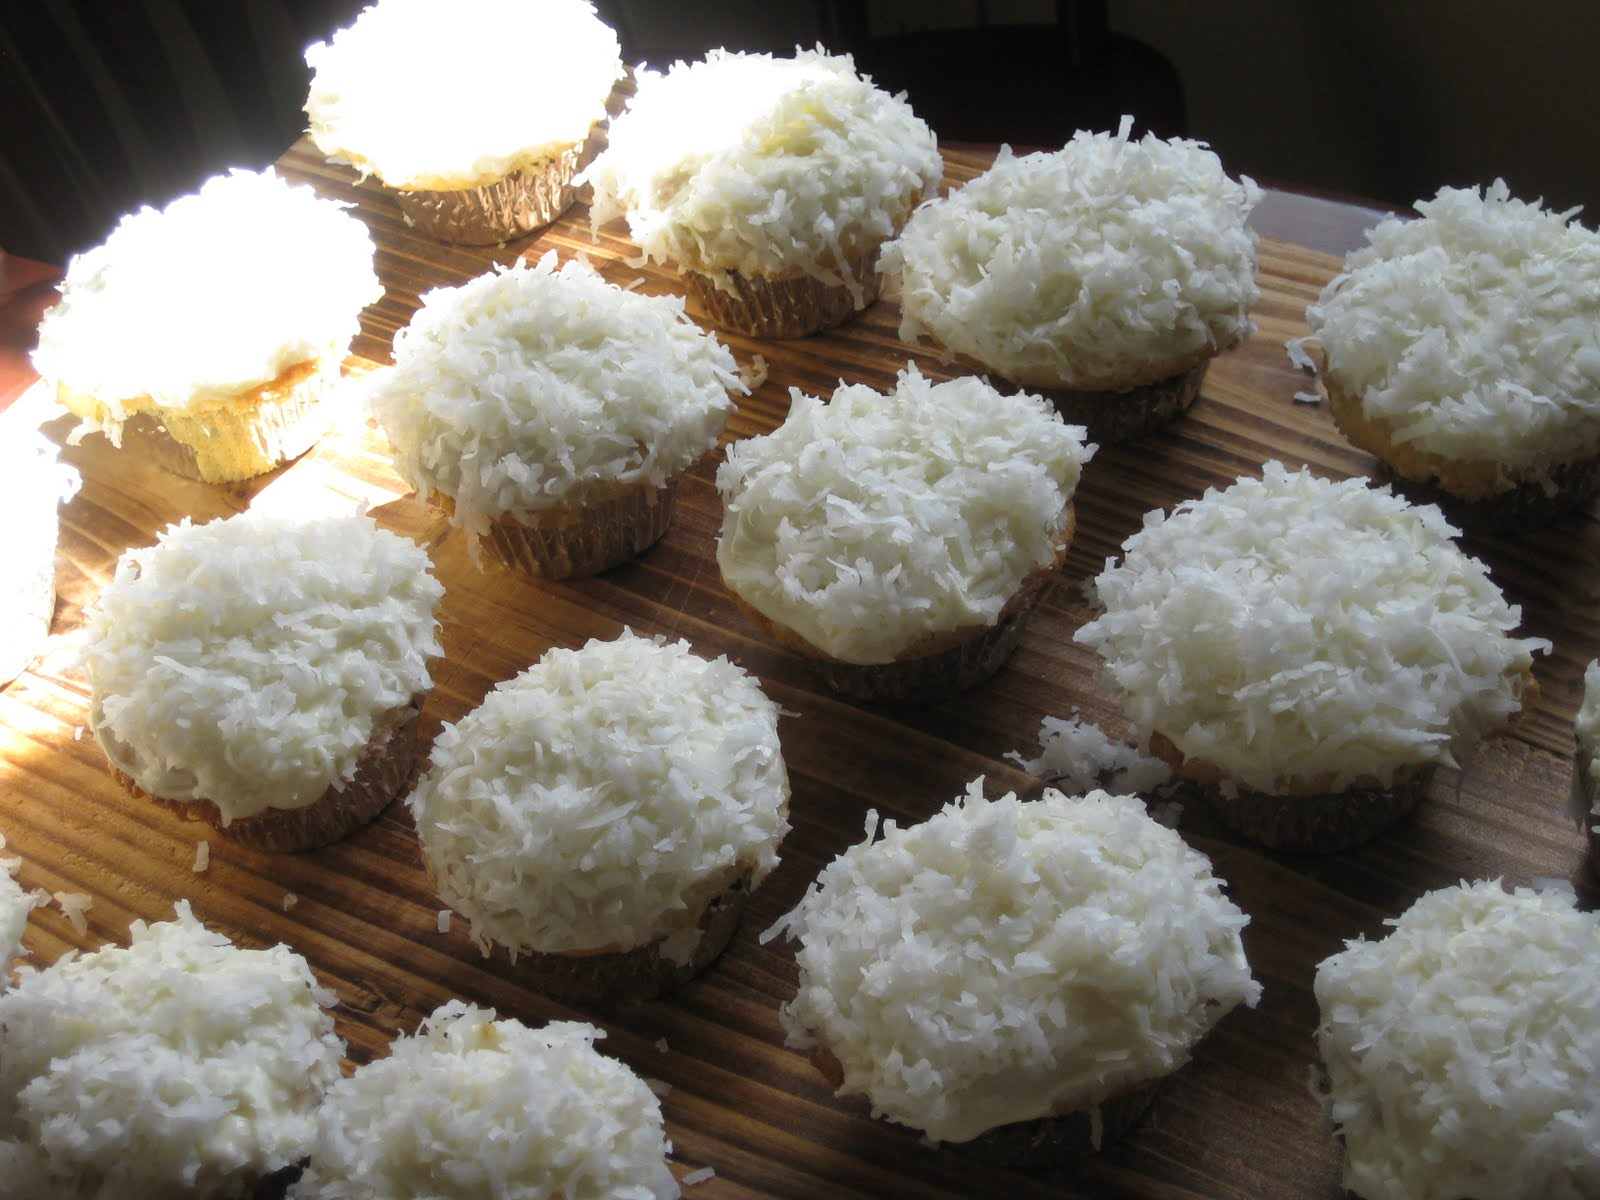 Coconut Cupcakes From Scratch